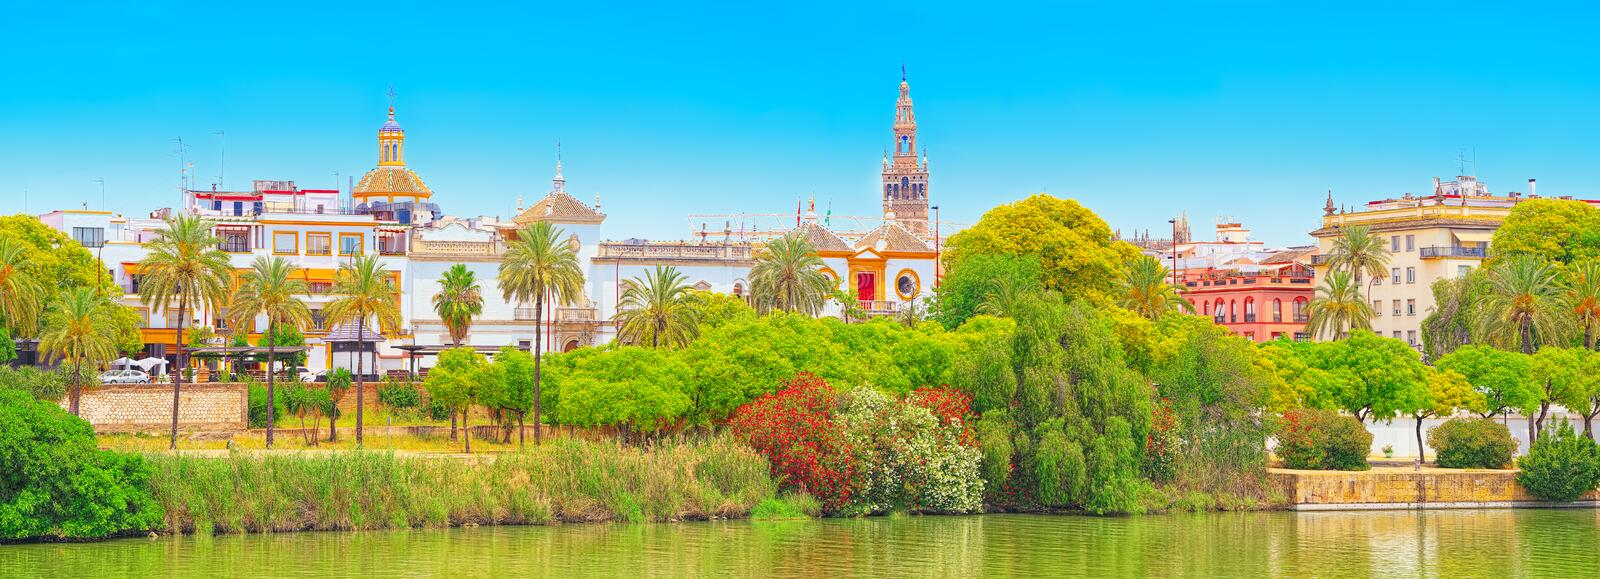 View on downtown of Seville and Guadalquivir River Promenade. Spain royalty free stock photography